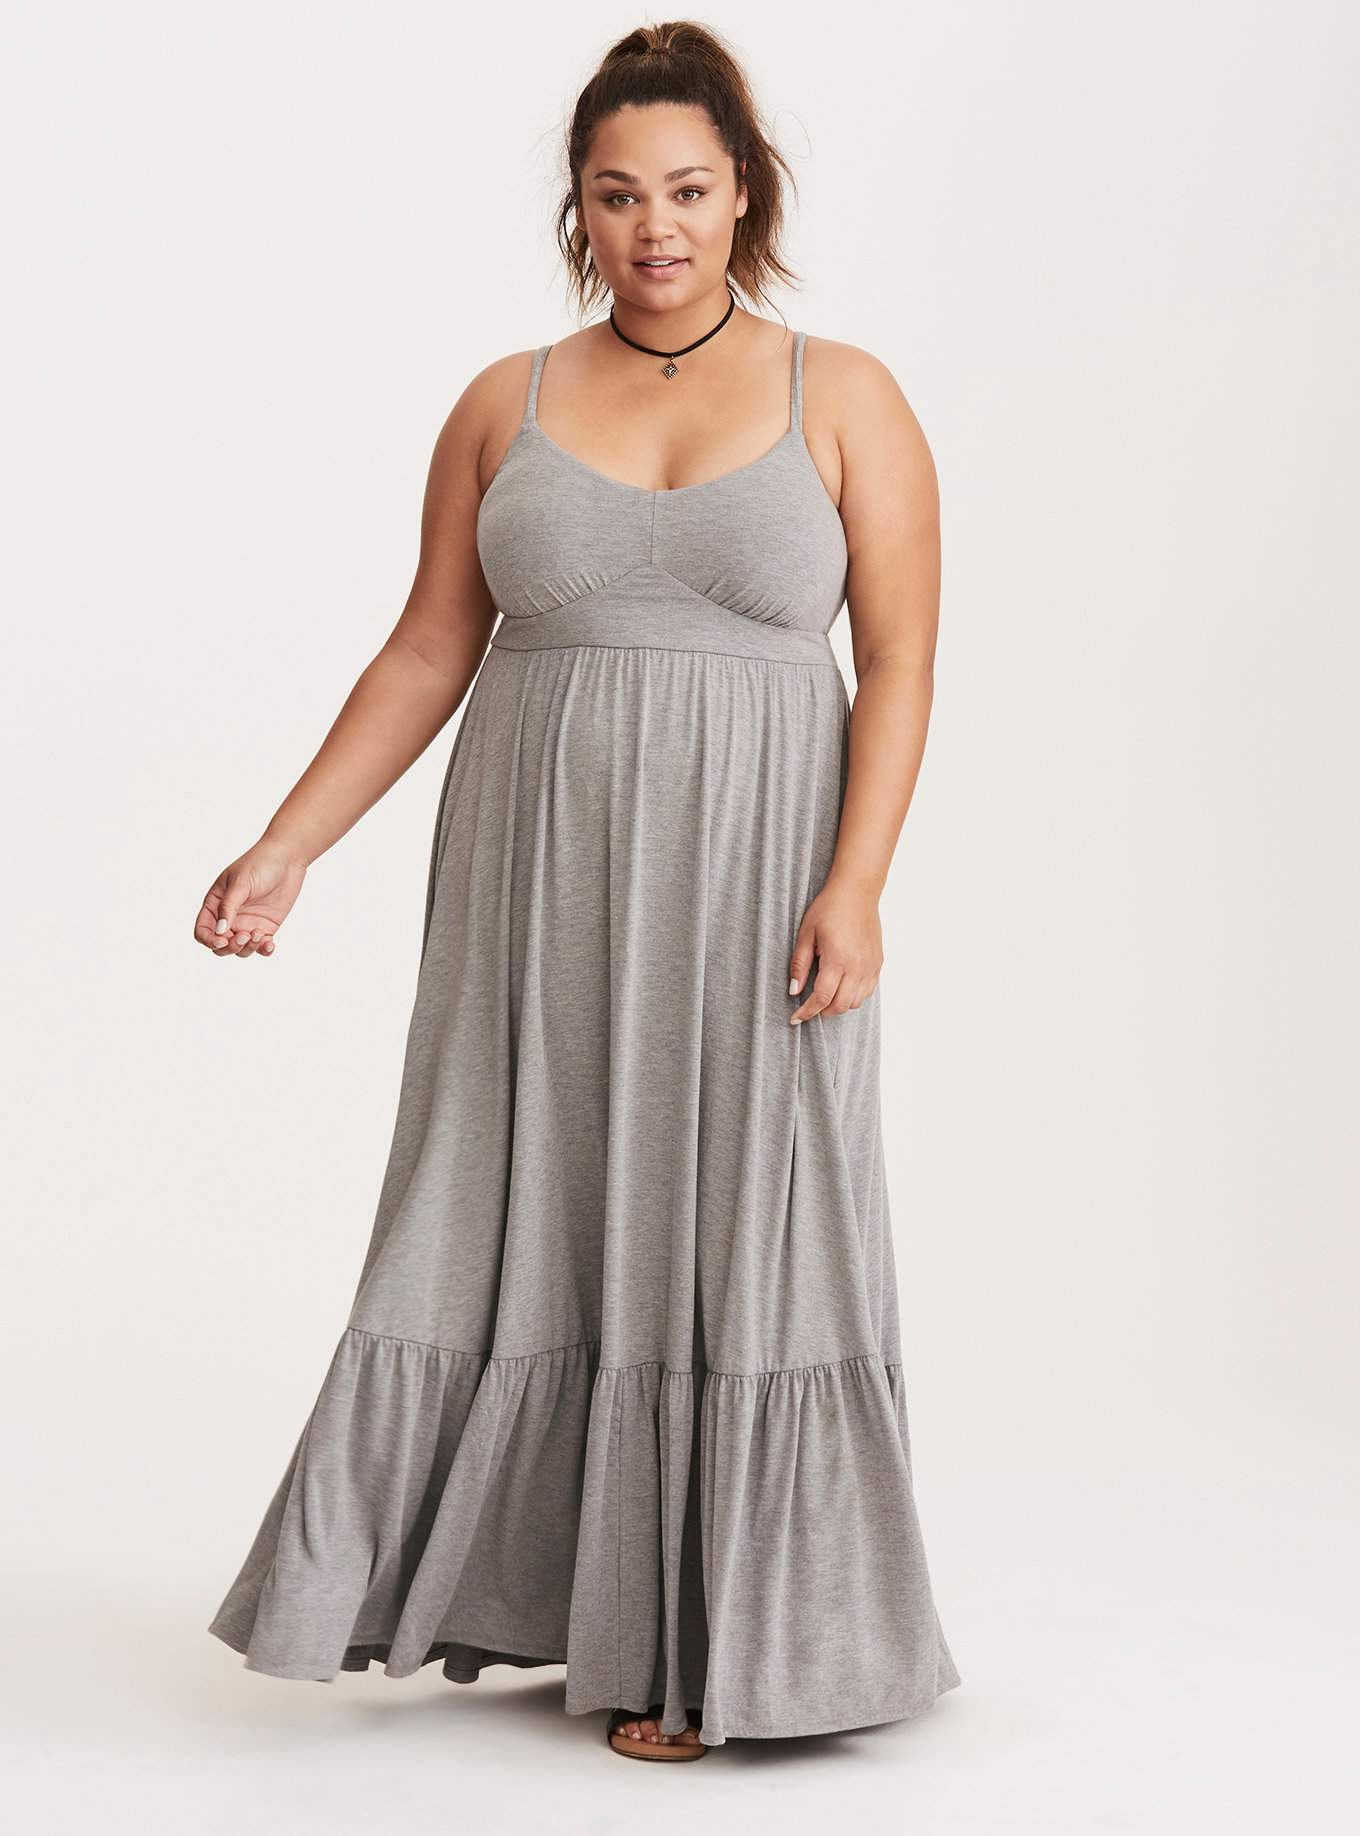 Have It: 10 Petite Plus Size Maxi Dresses & How to Rock Them!